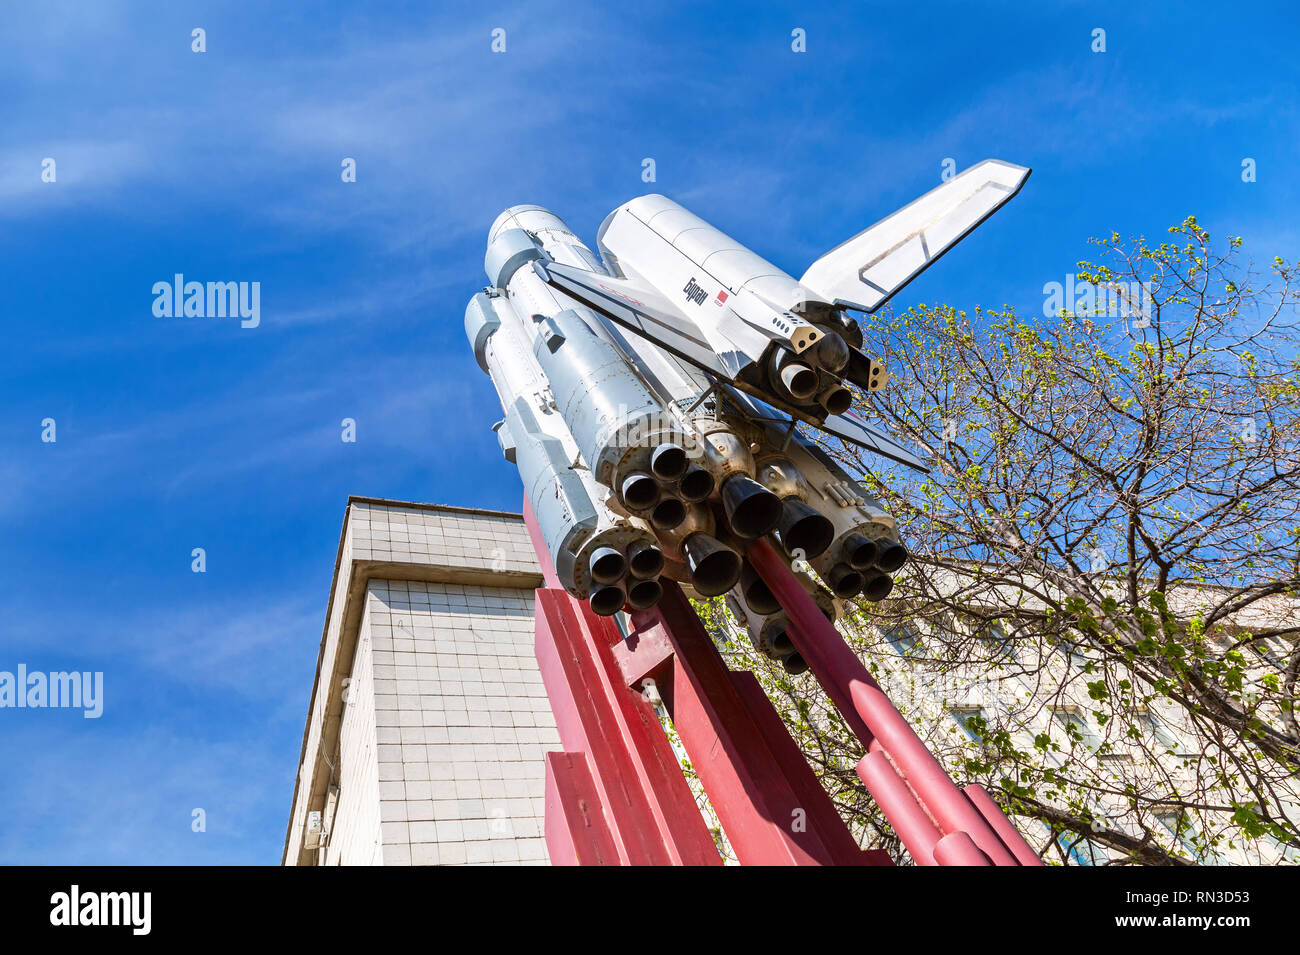 Samara, Russia - May 6, 2018: Copy of space shuttle Buran in sunny day. Buran orbiter is the first reusable manned space vehicle in Russia - Stock Image